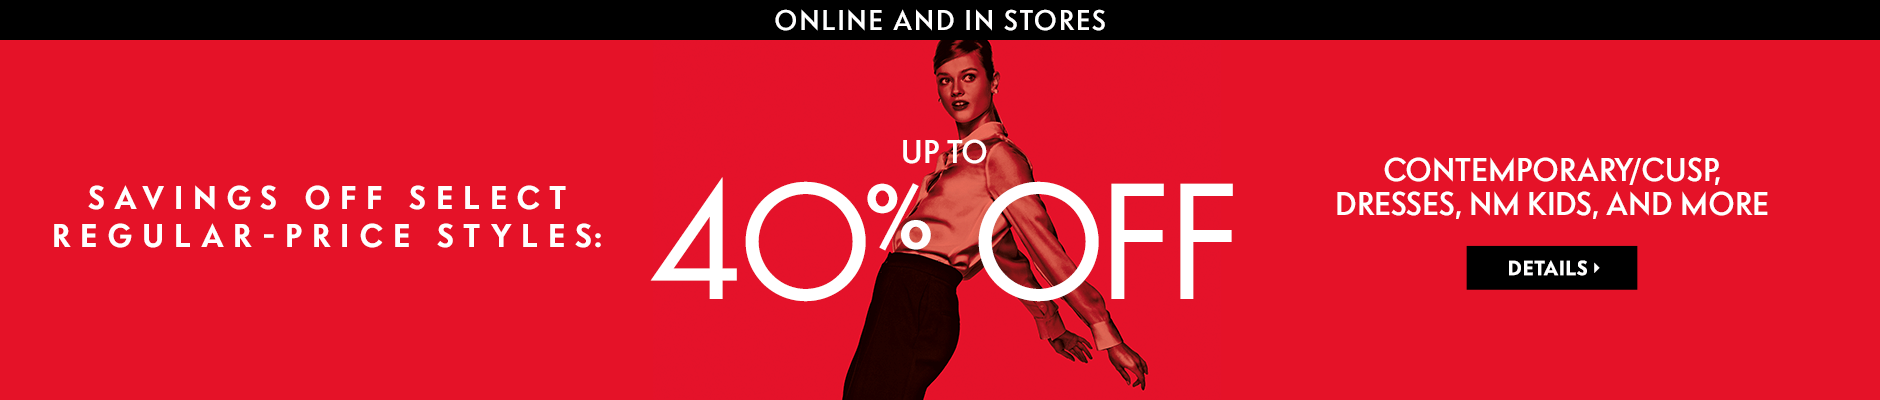 Up to 40% off for her